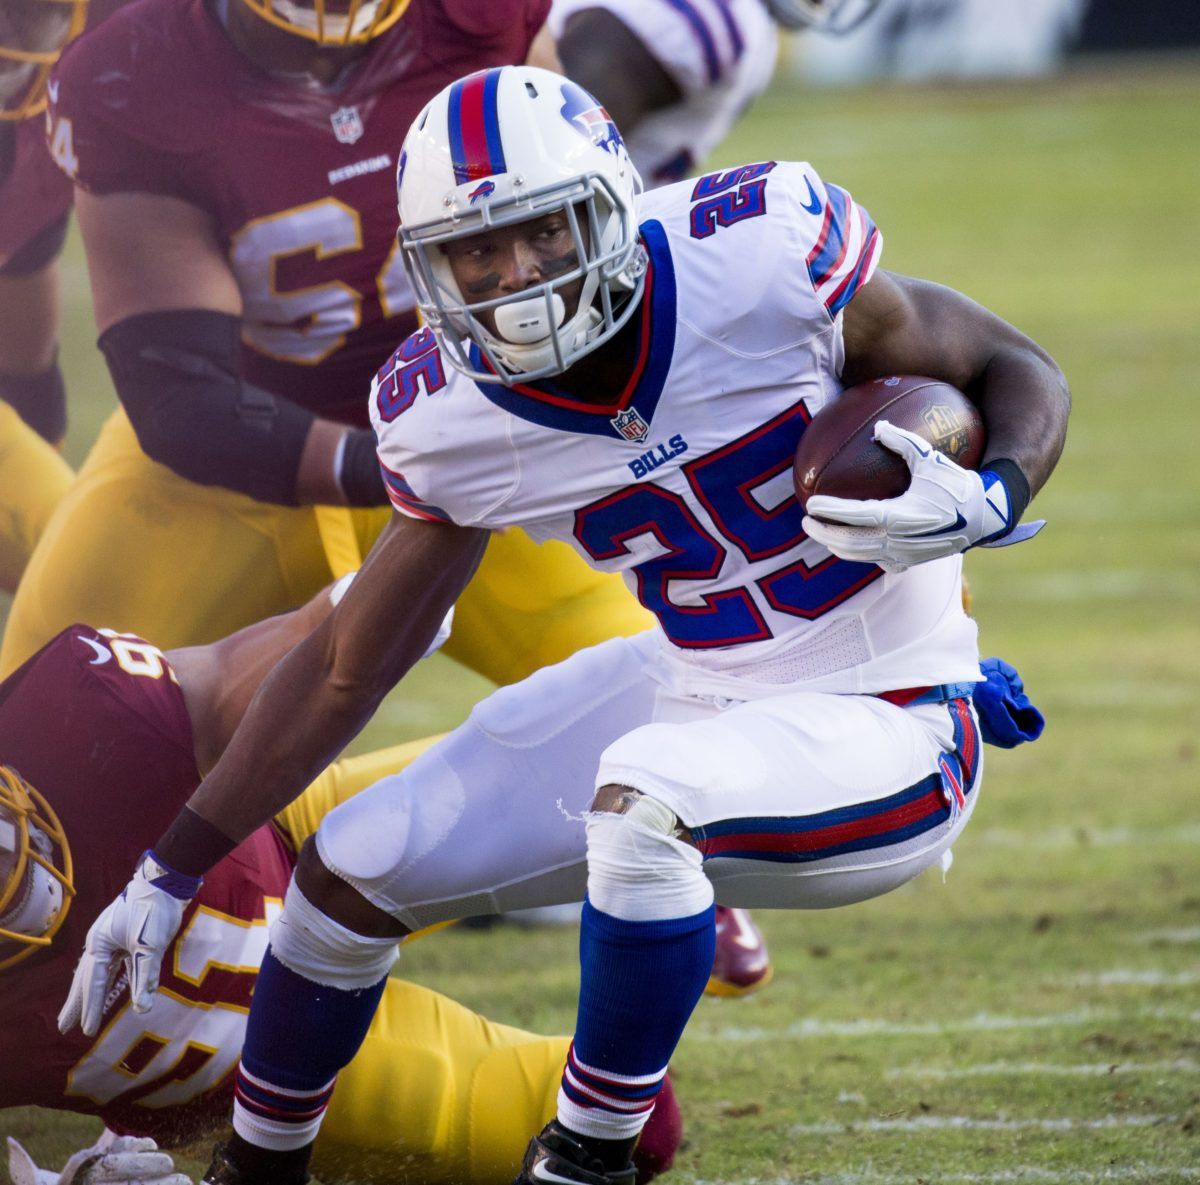 File:LeSean McCoy vs Redskins 2015.jpg – Wikimedia Commons